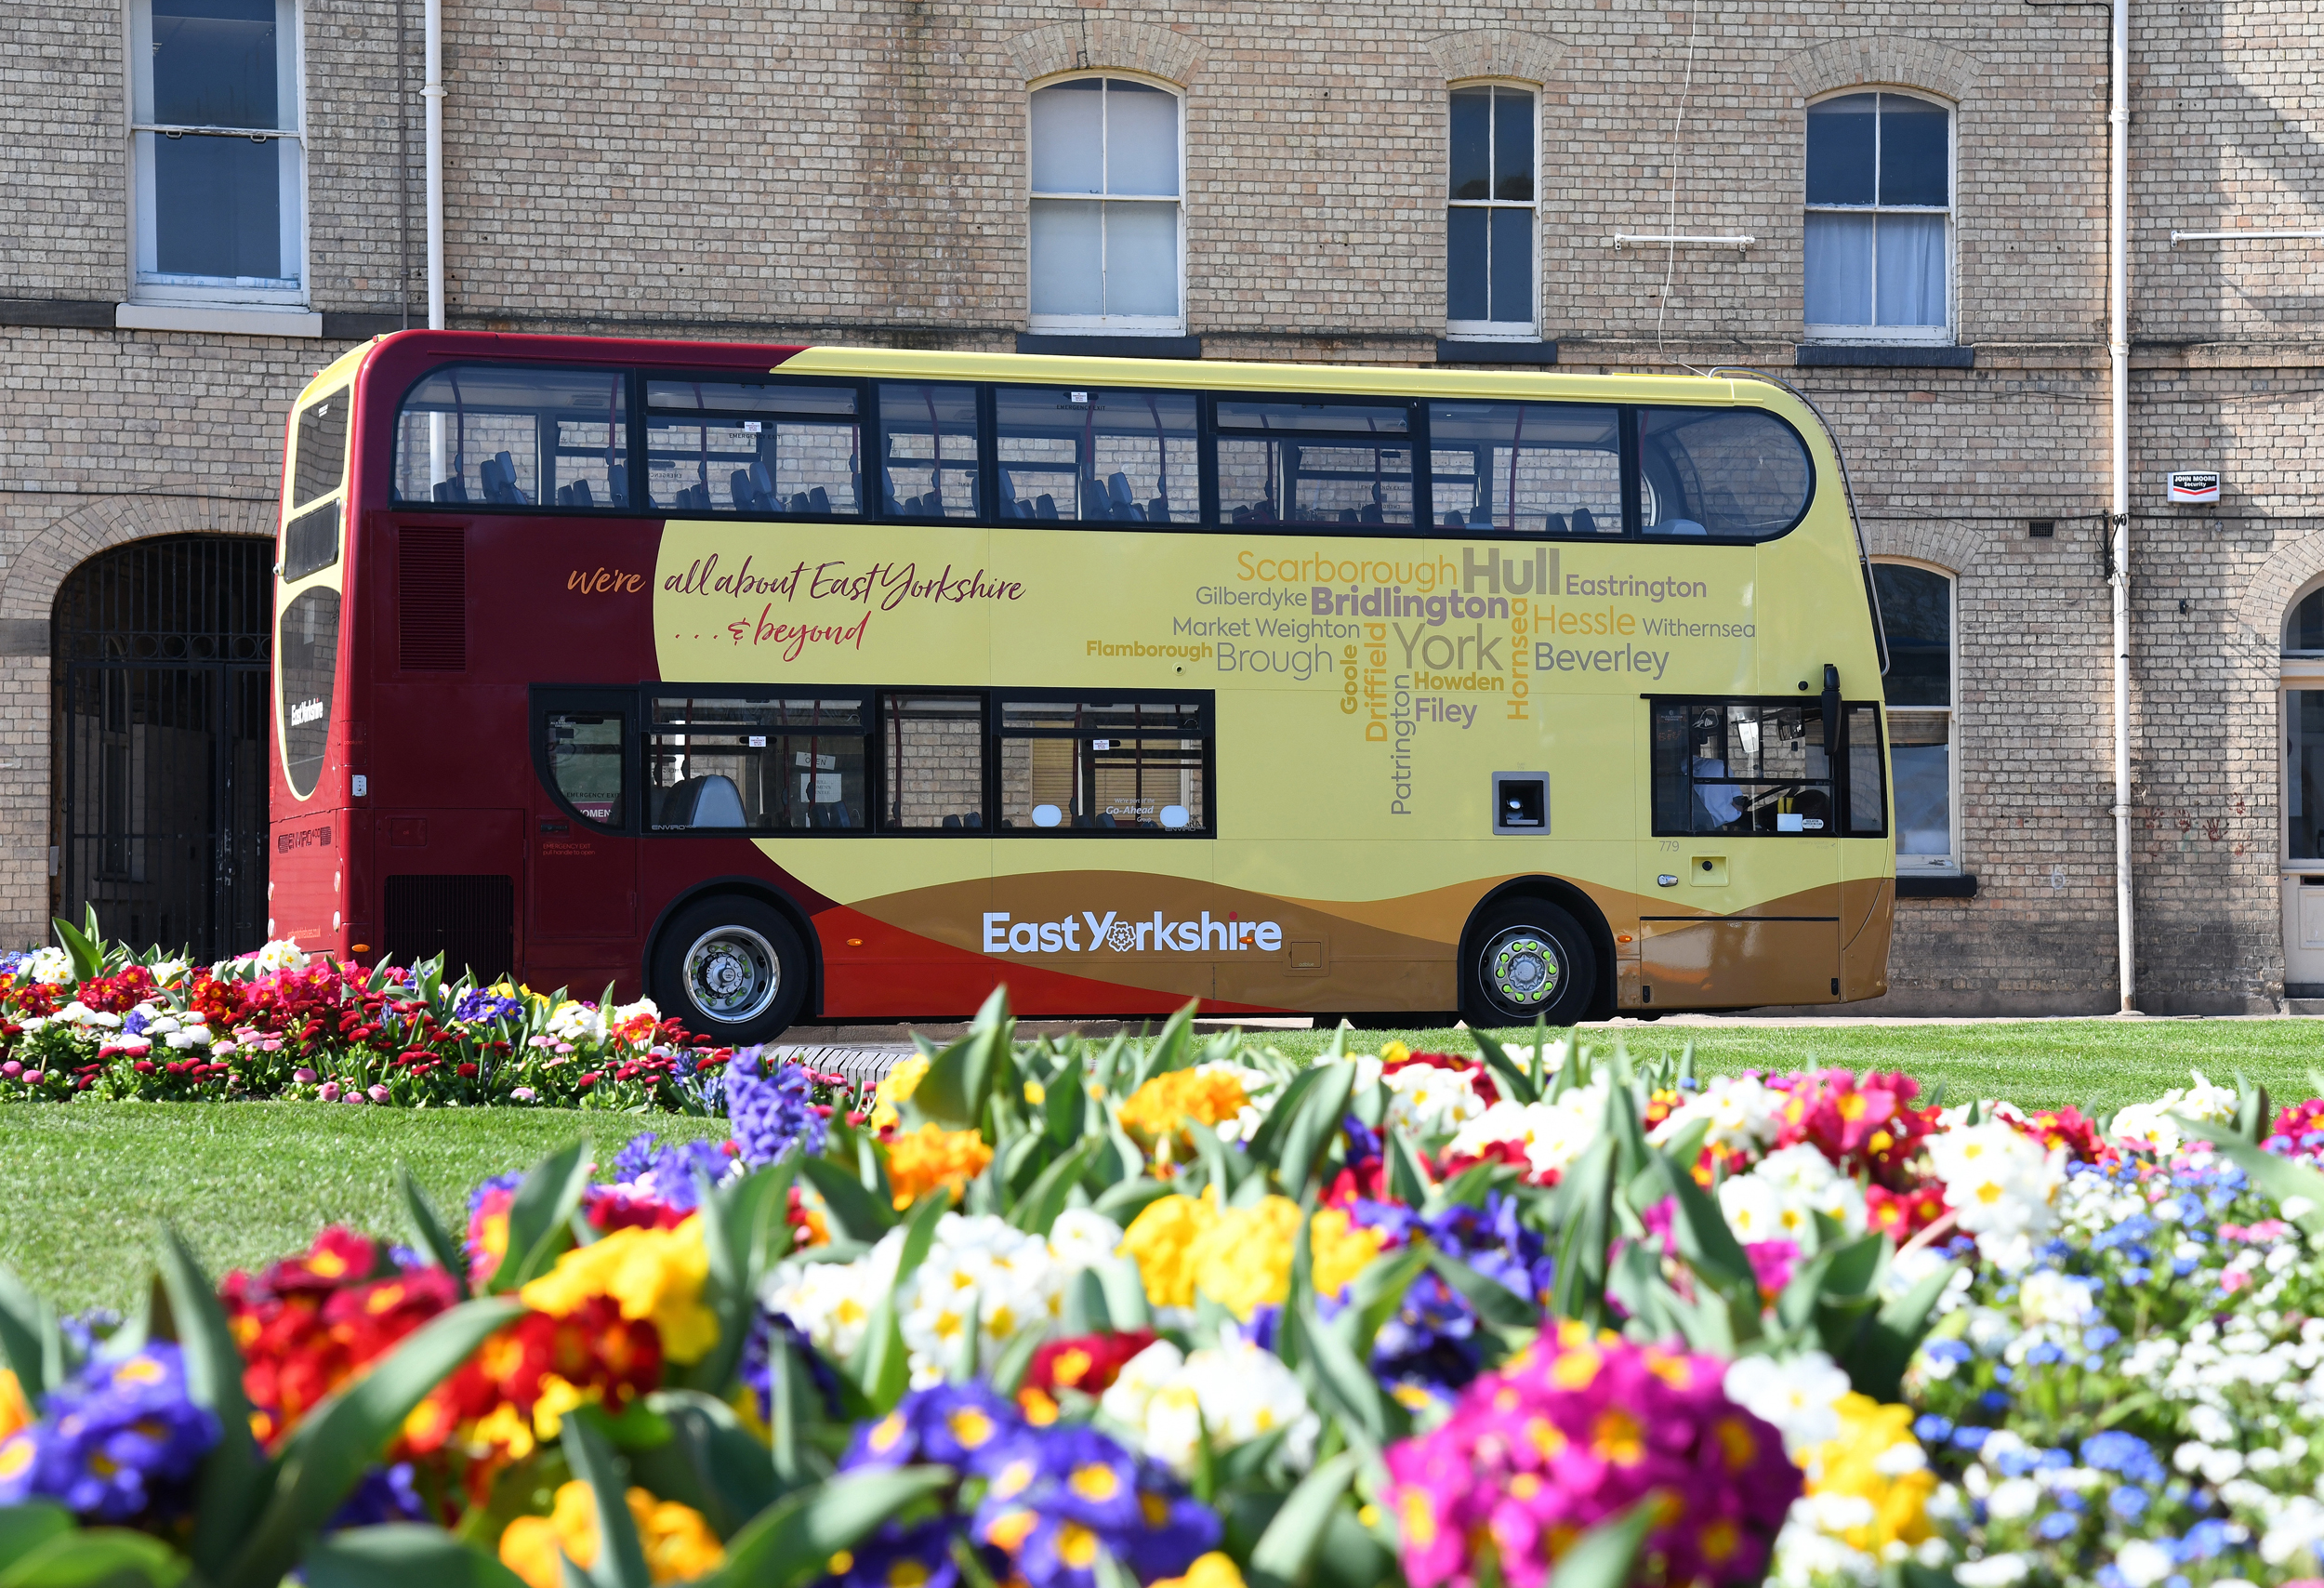 An East Yorkshire bus in Queen's Gardens, Hull.